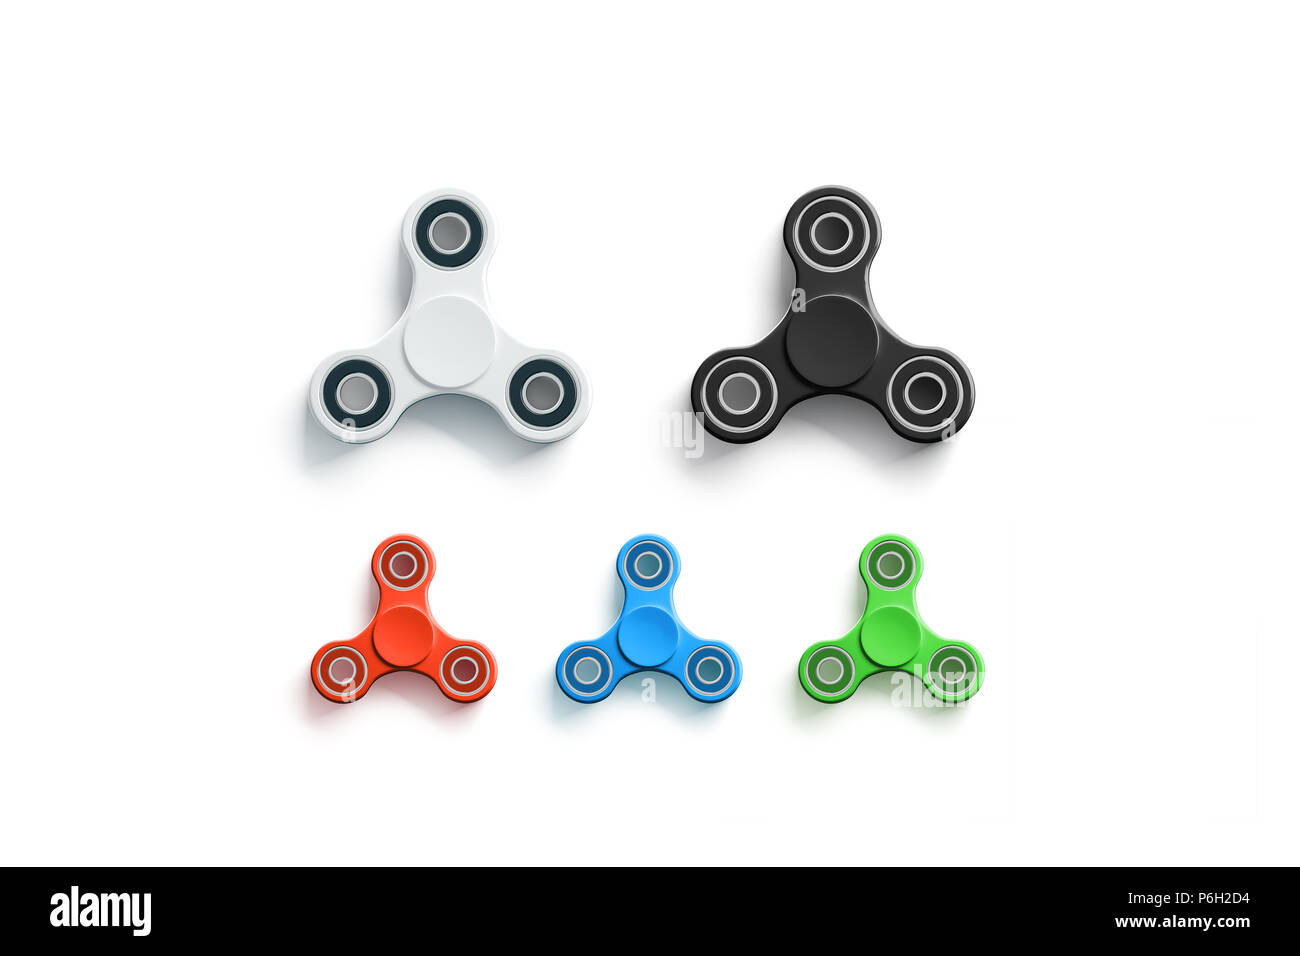 blank colored fidget spinners mock up top view 3d rendering clear spinning toy mockup design template empty stress reliever tri spinner